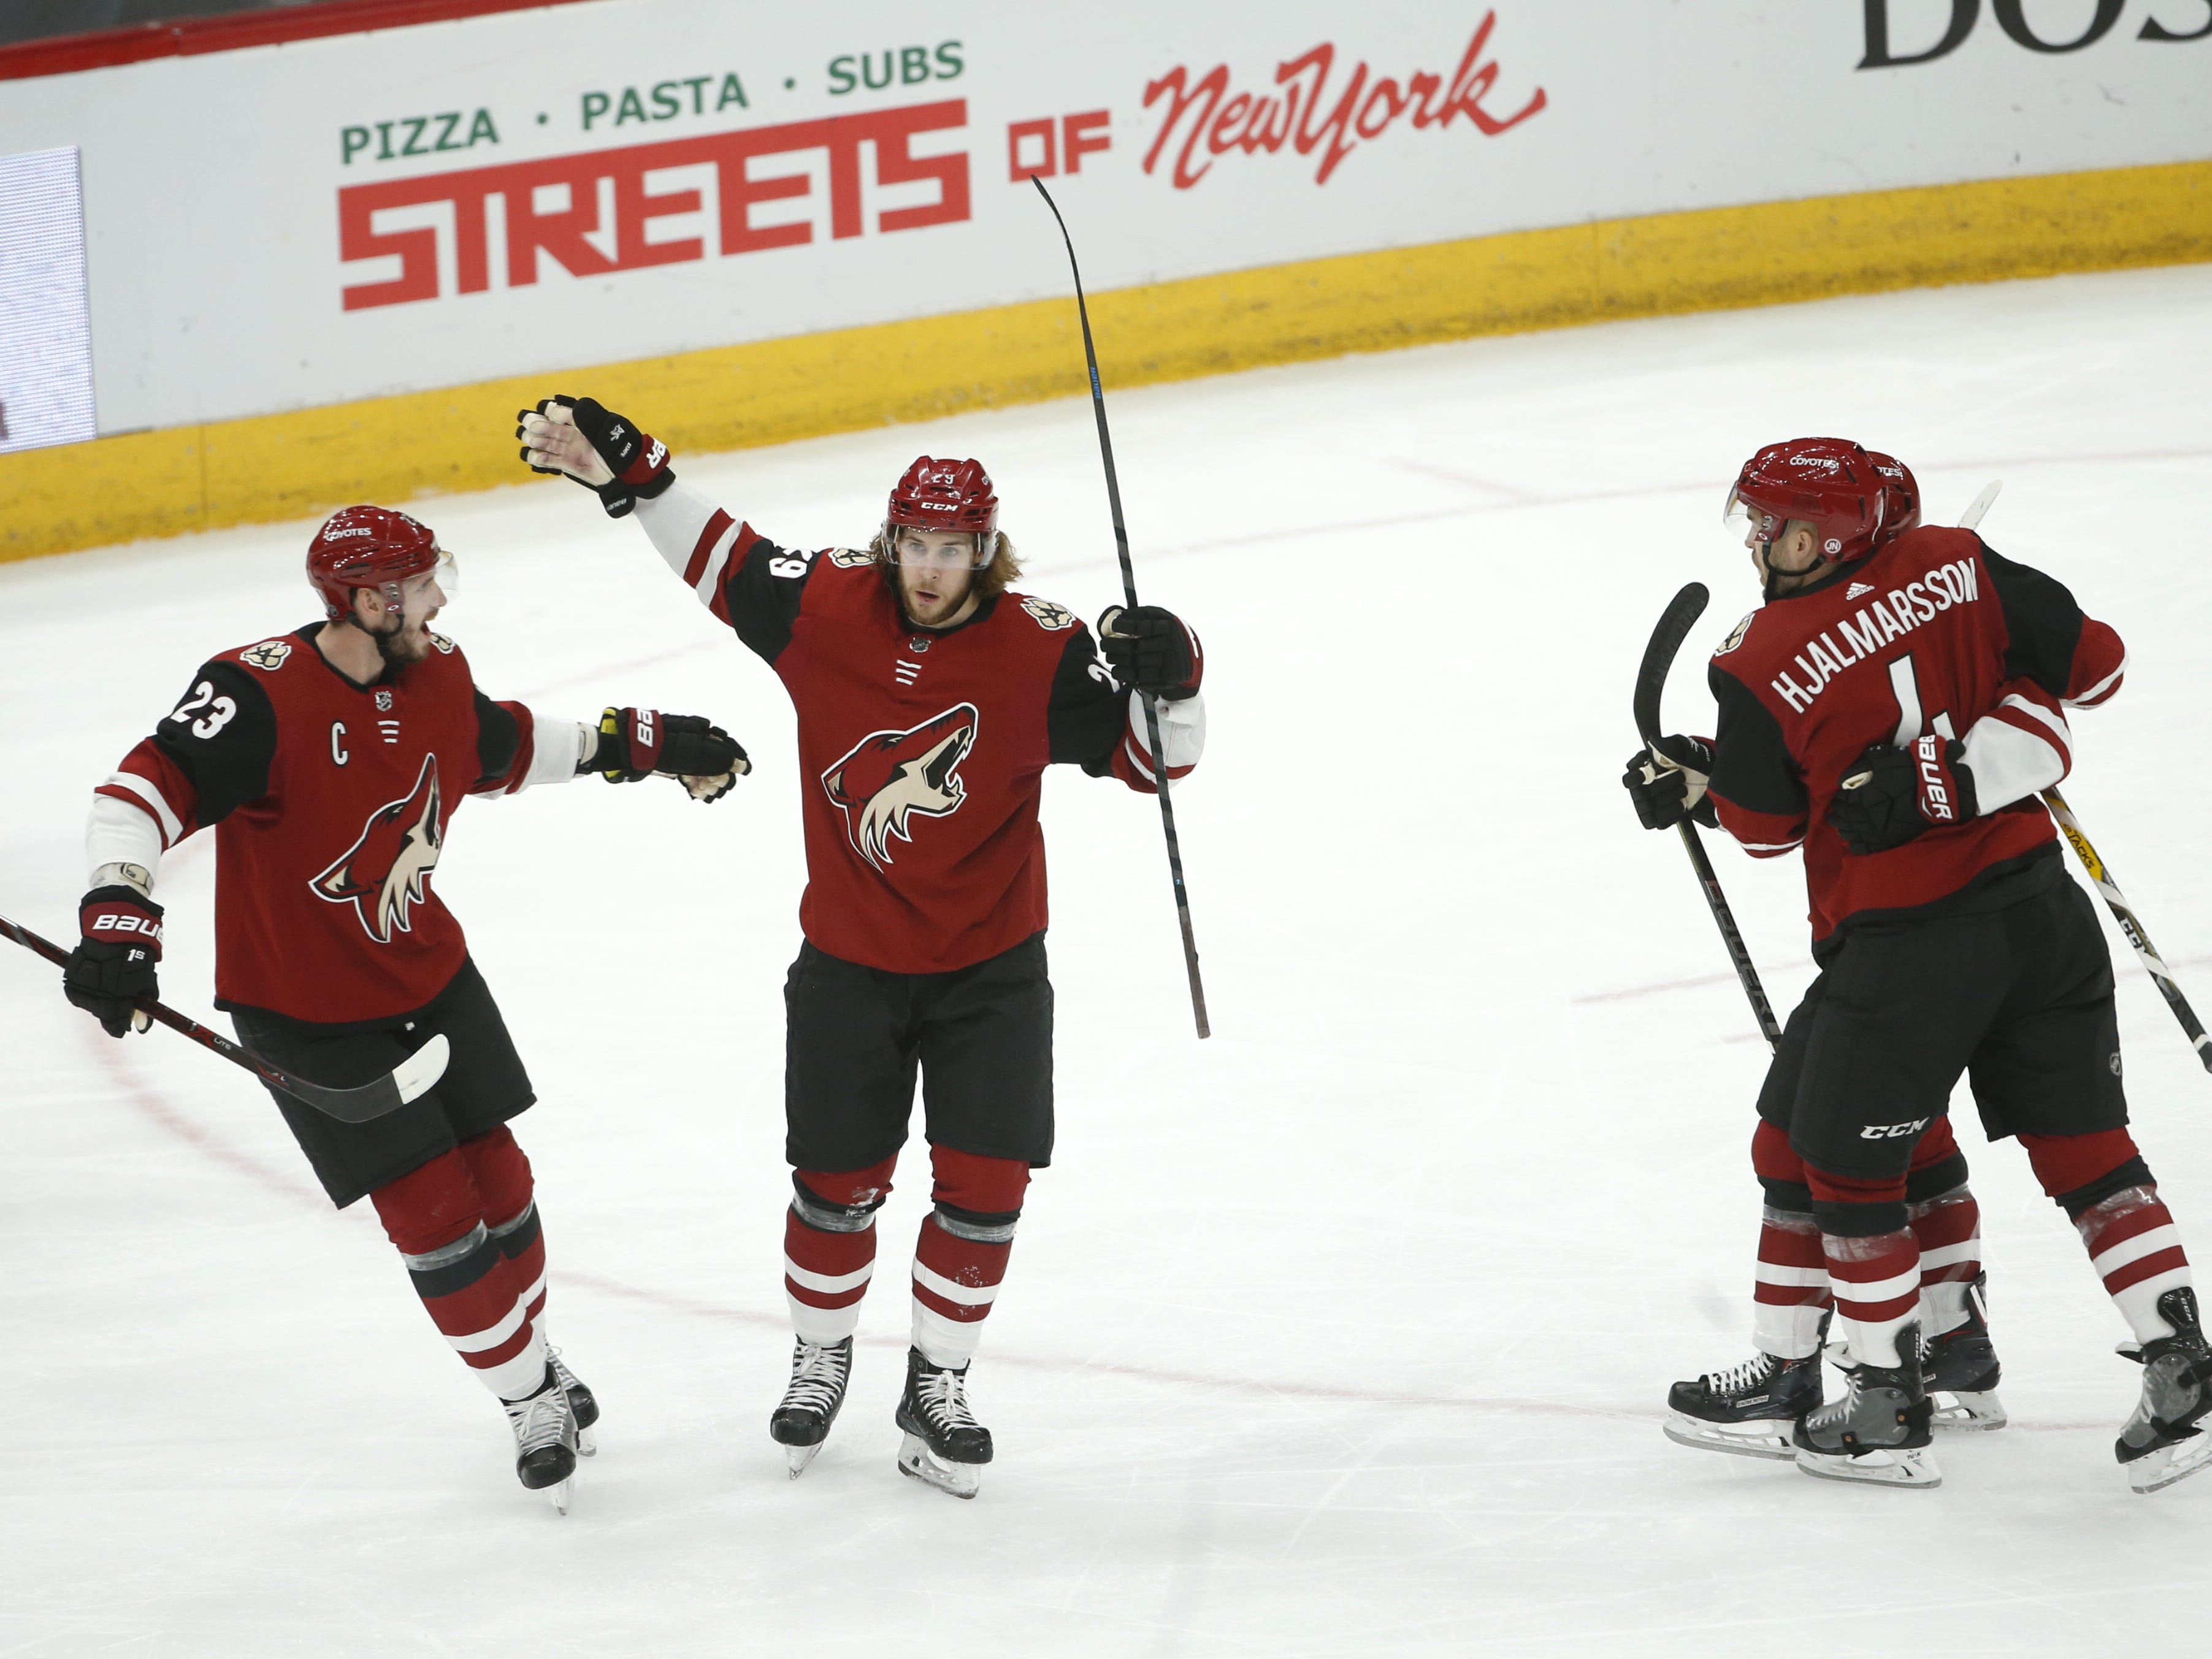 Coyotes' Mario Kempe (29) celebrates scoring with Oliver Ekman-Larsson (23) during the first period against the Rangers at Gila River Arena in Glendale, Ariz. on January 6, 2019.